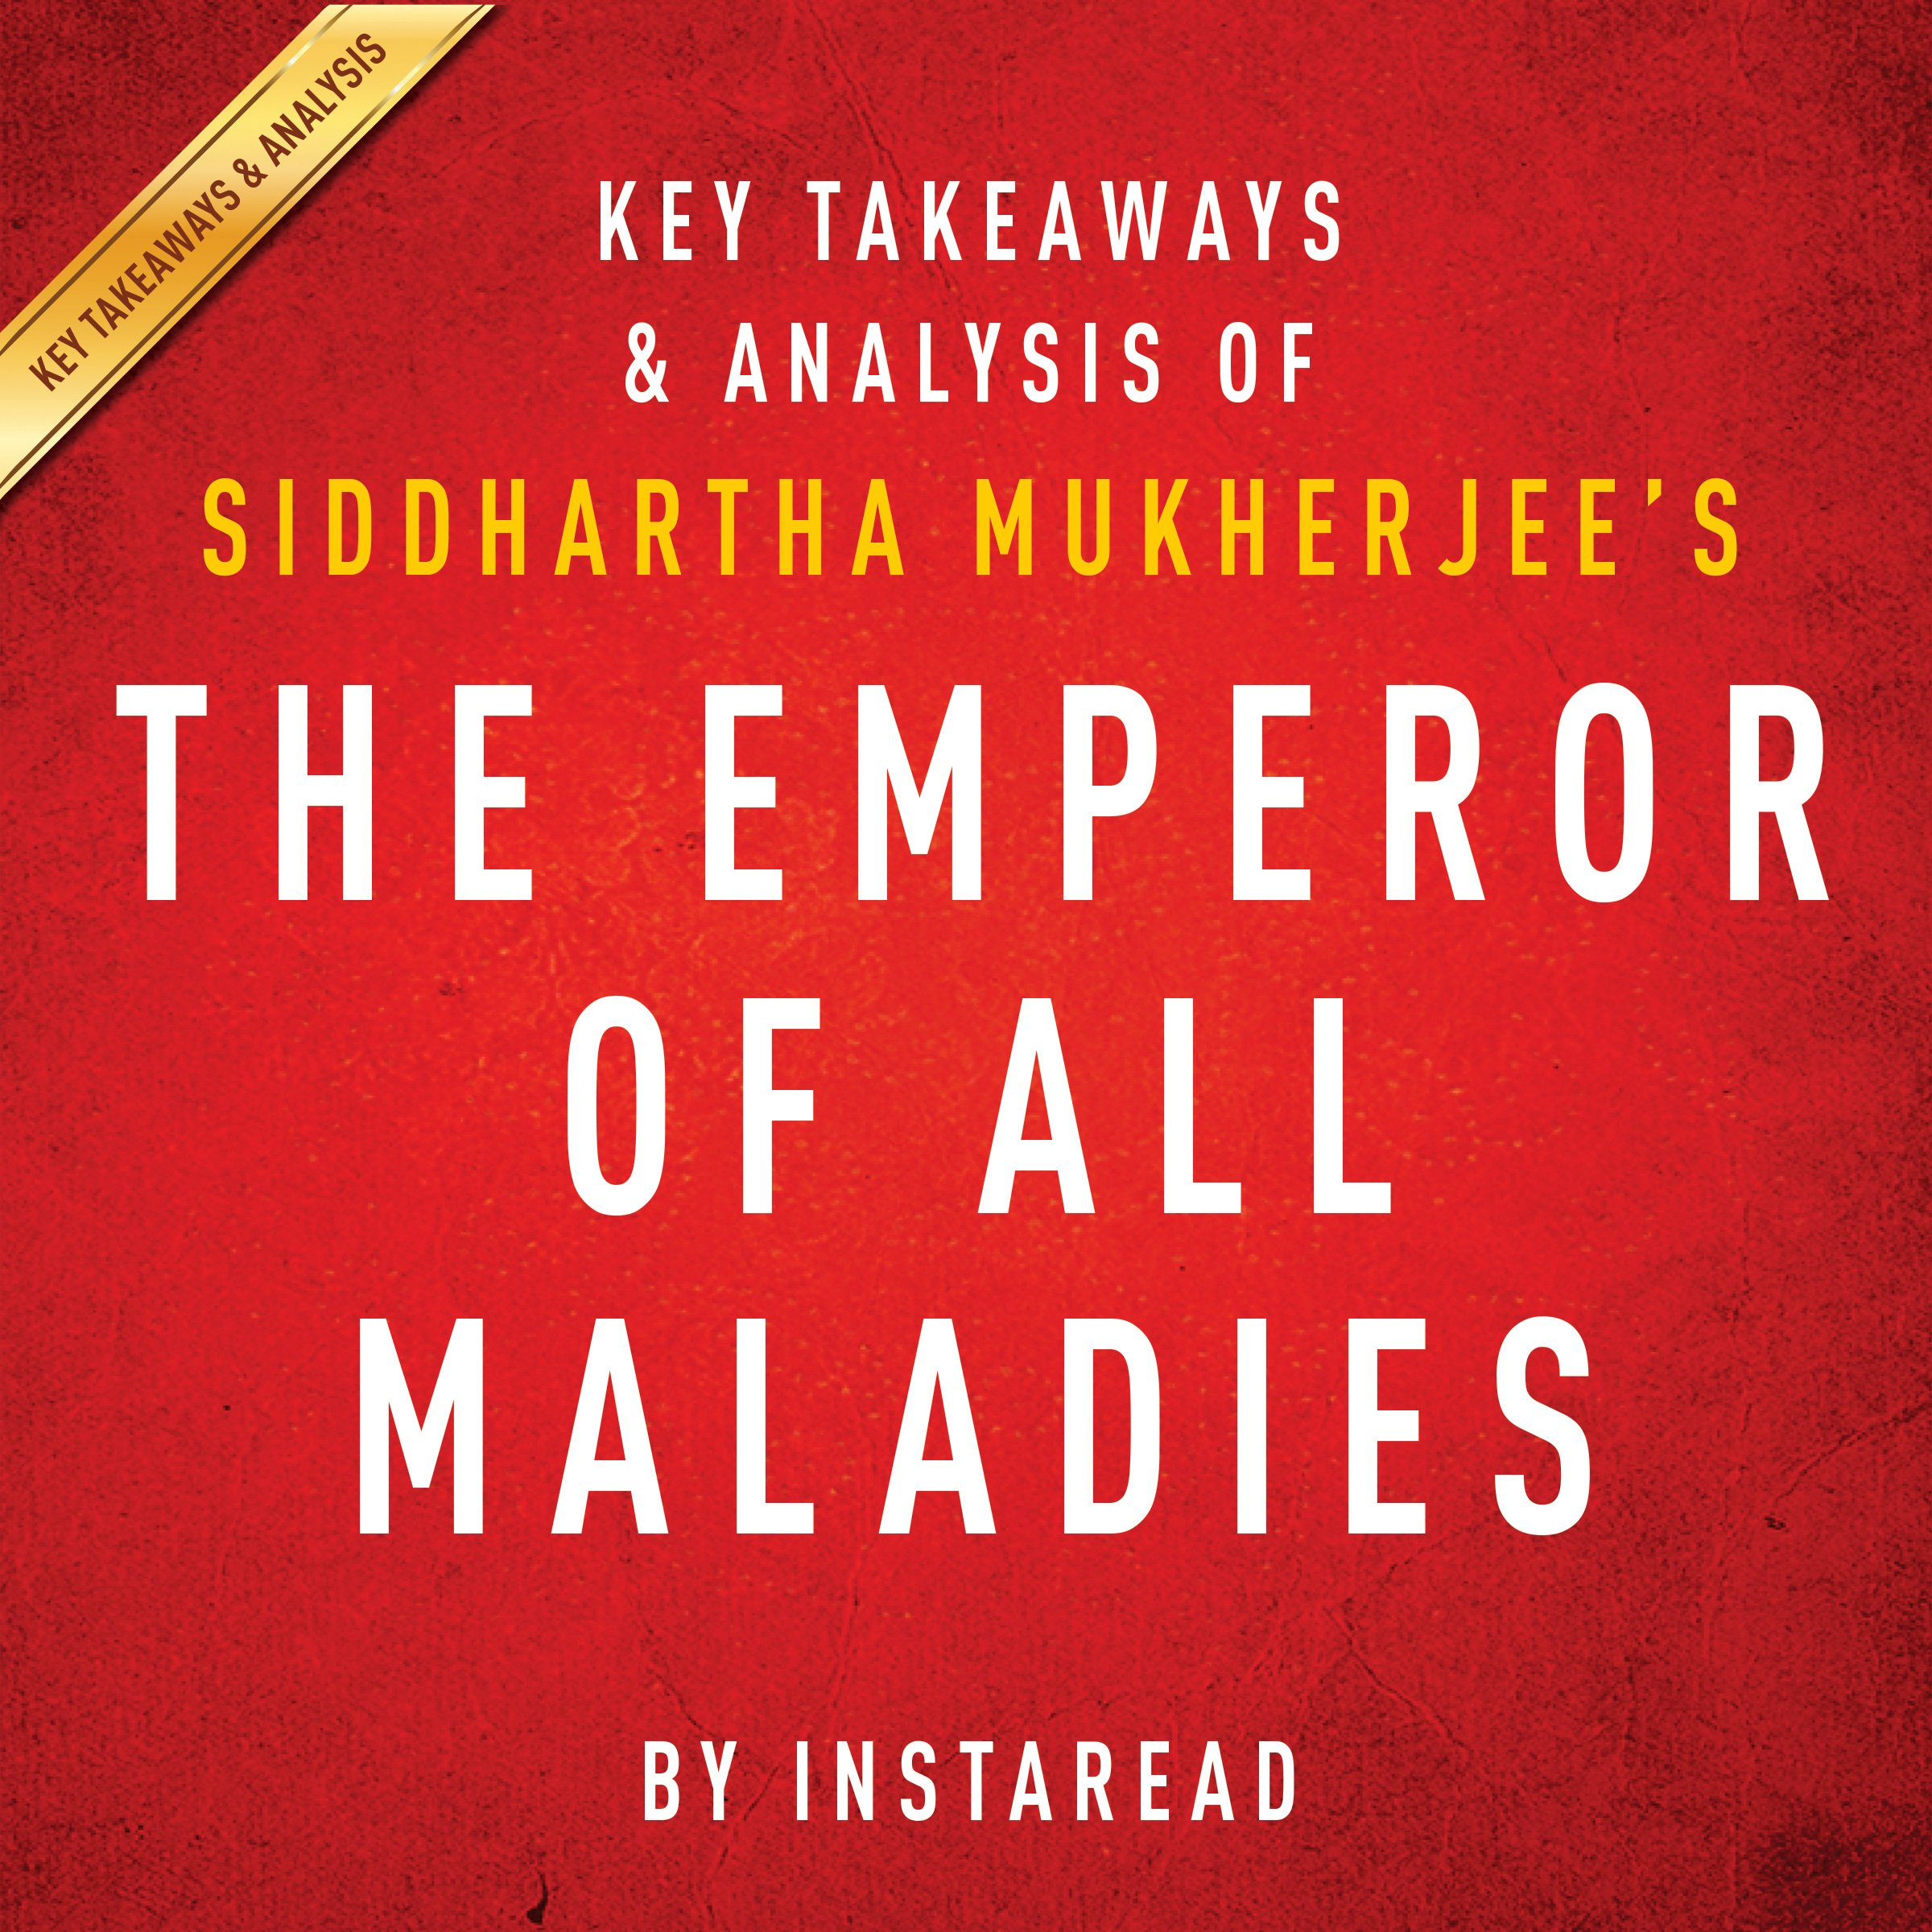 The Emperor Of All Maladies By Siddhartha Mukherjee   Key Takeaways And Analysis  A Biography Of Cancer